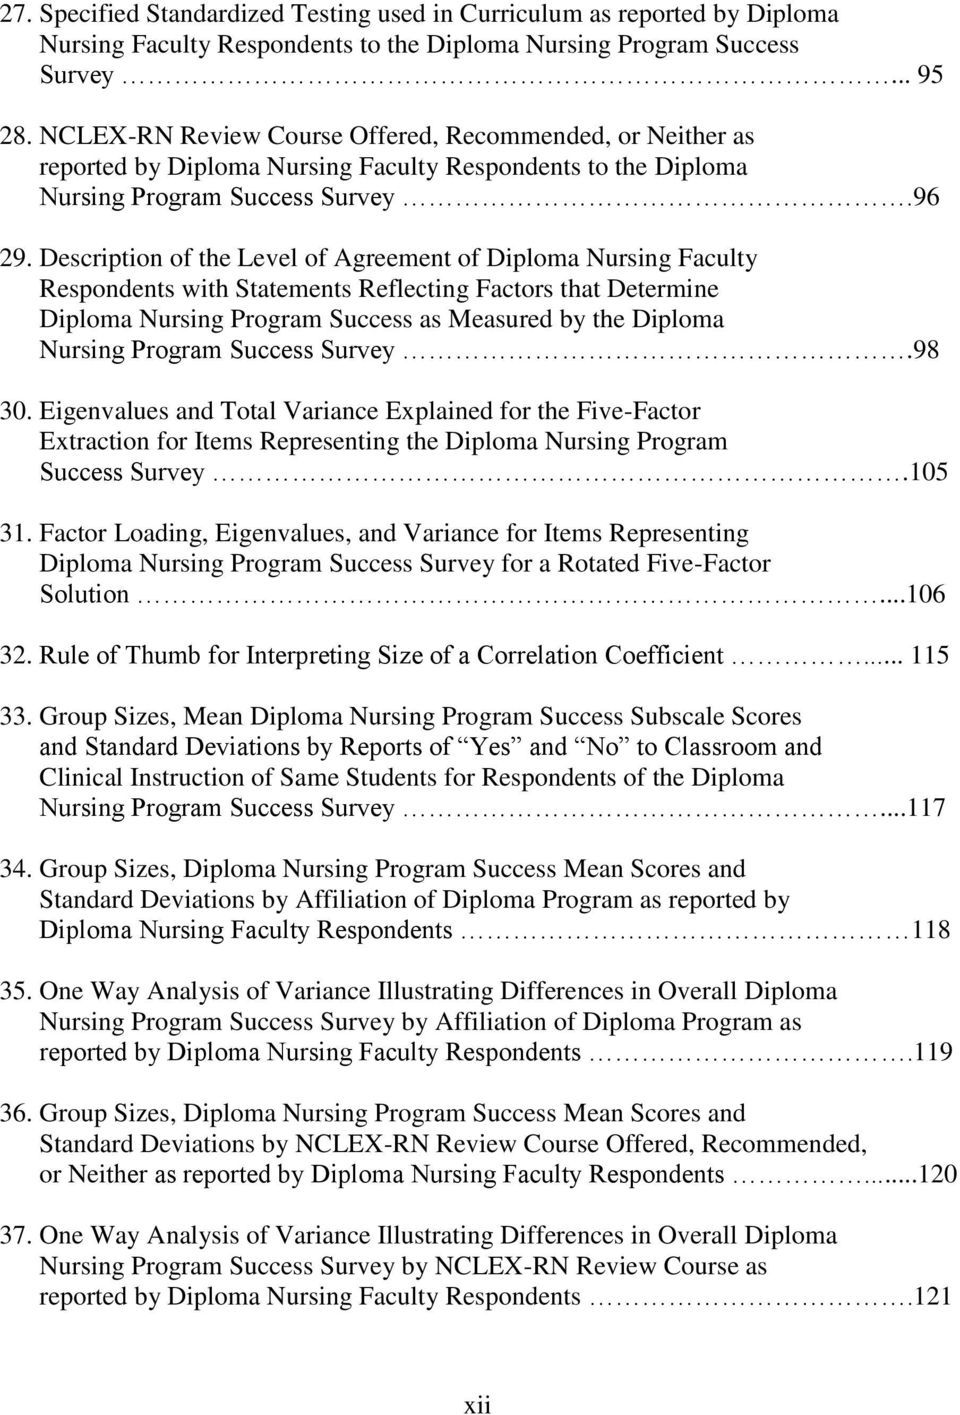 Description of the Level of Agreement of Diploma Nursing Faculty Respondents with Statements Reflecting Factors that Determine Diploma Nursing Program Success as Measured by the Diploma Nursing